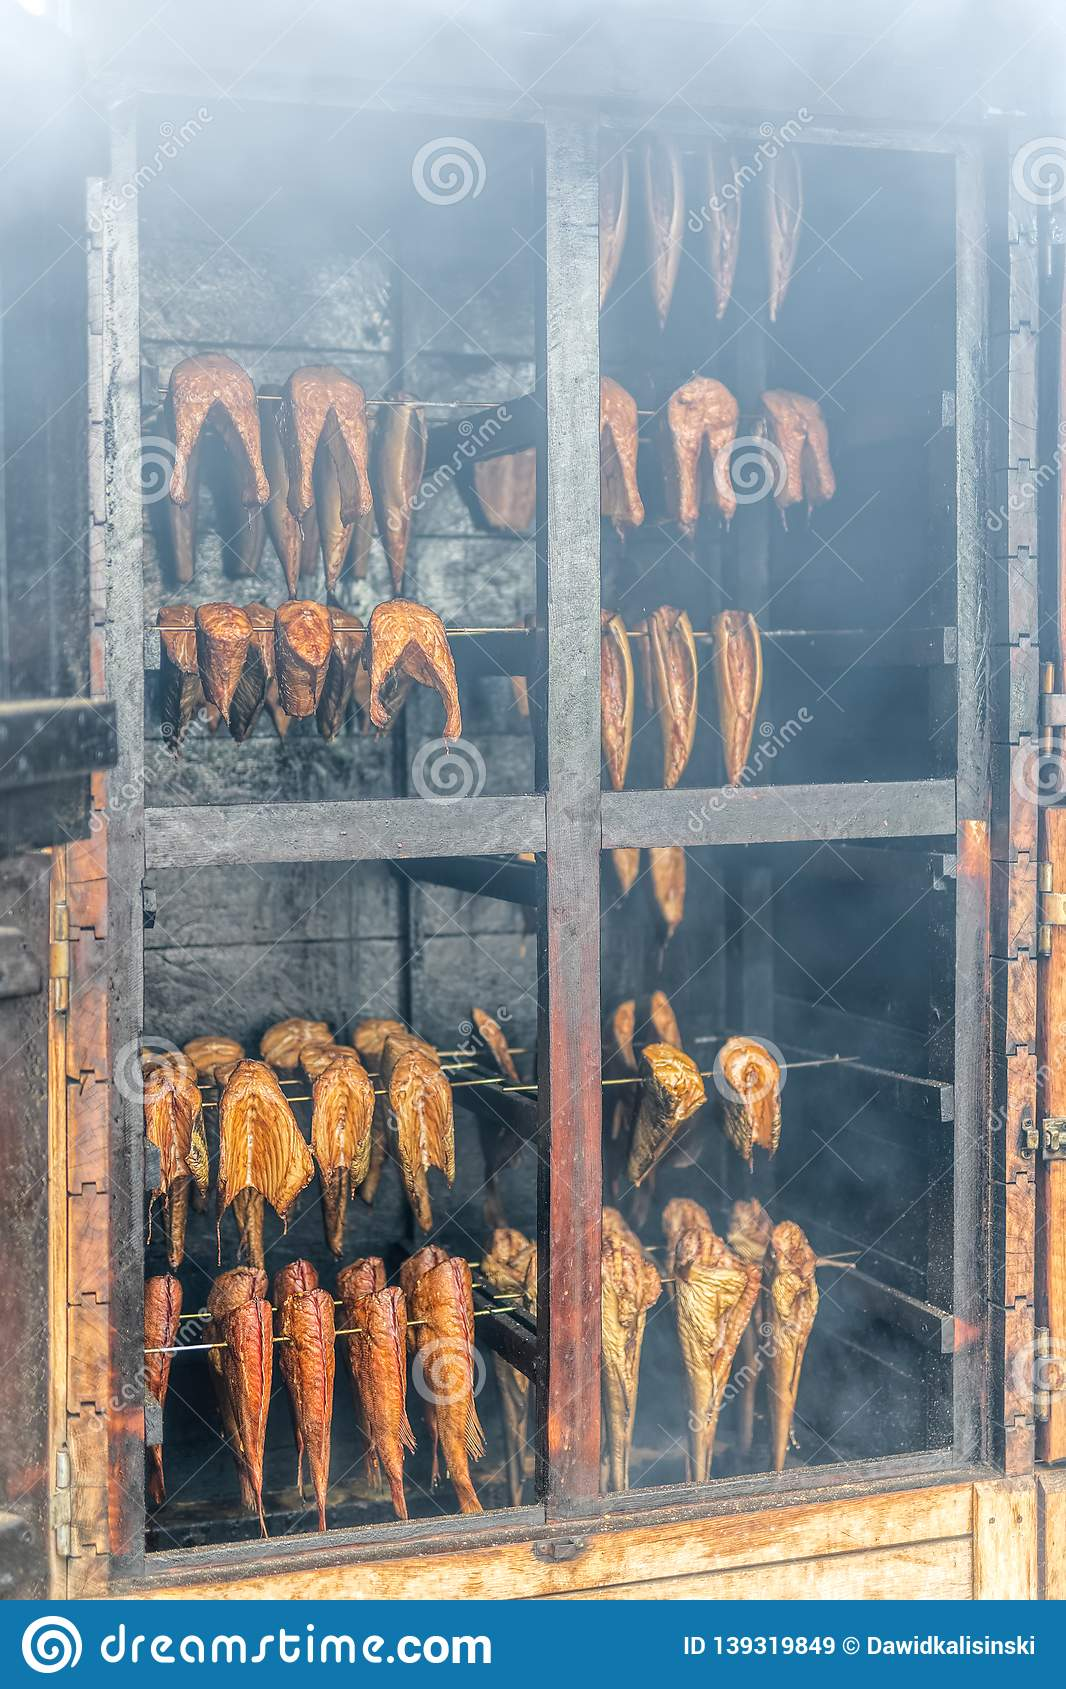 Traditionally hot smoked fishes in retro style smokehouse